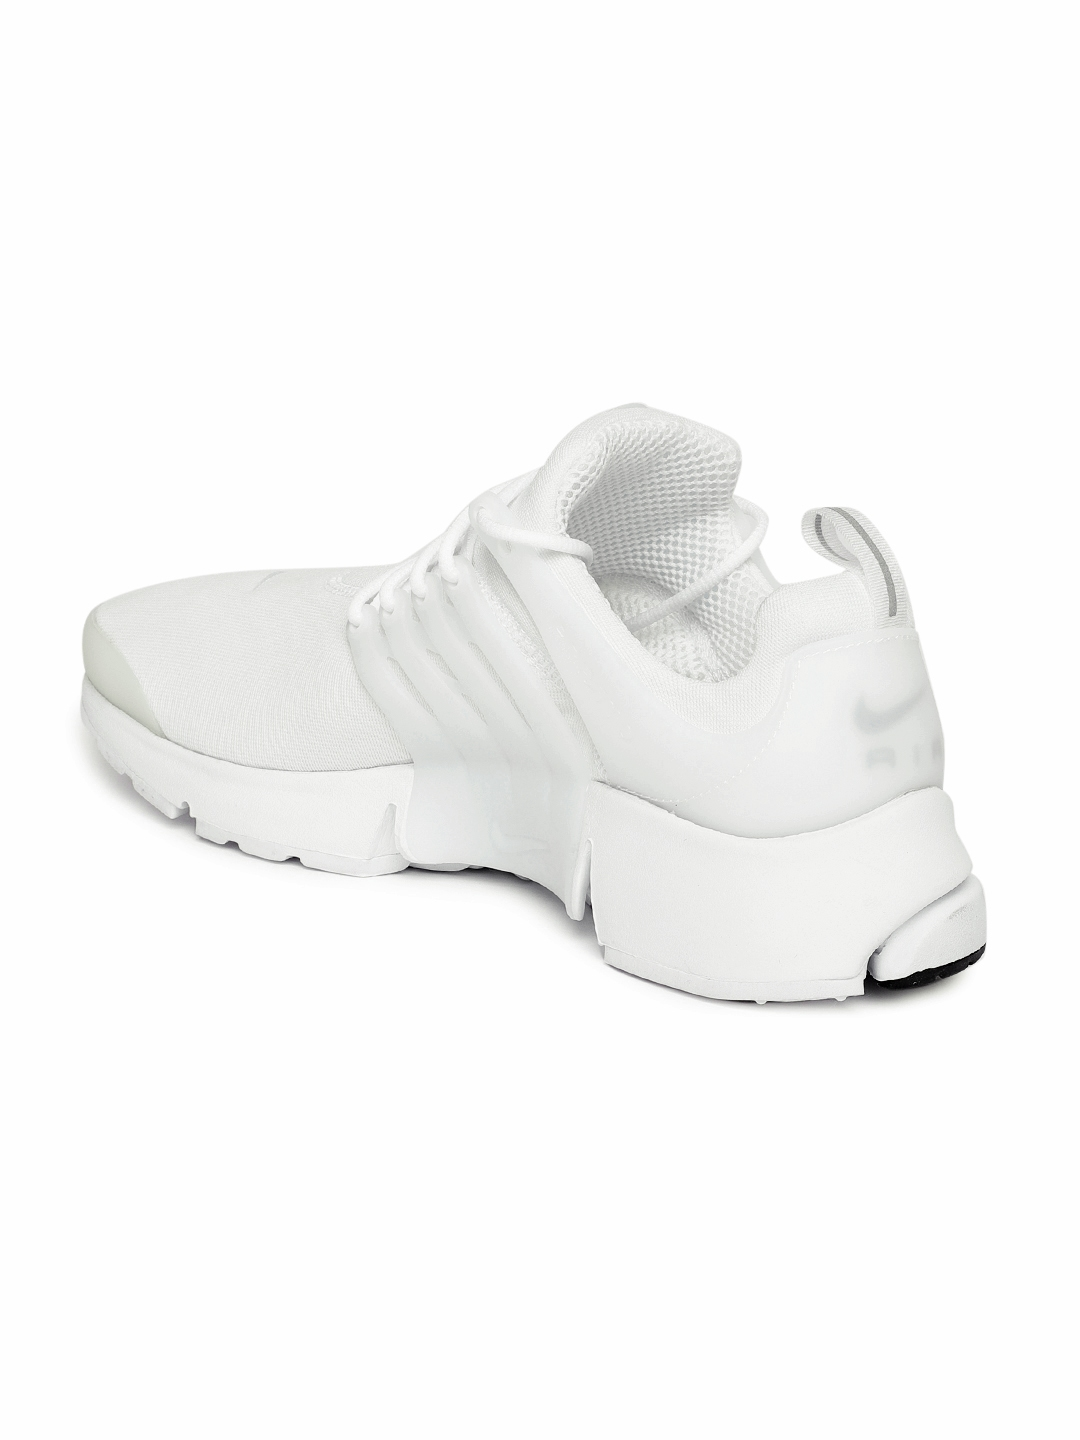 81691a17f9c8 Buy Nike Men White Air Presto Essential Sneakers - Casual Shoes for ...